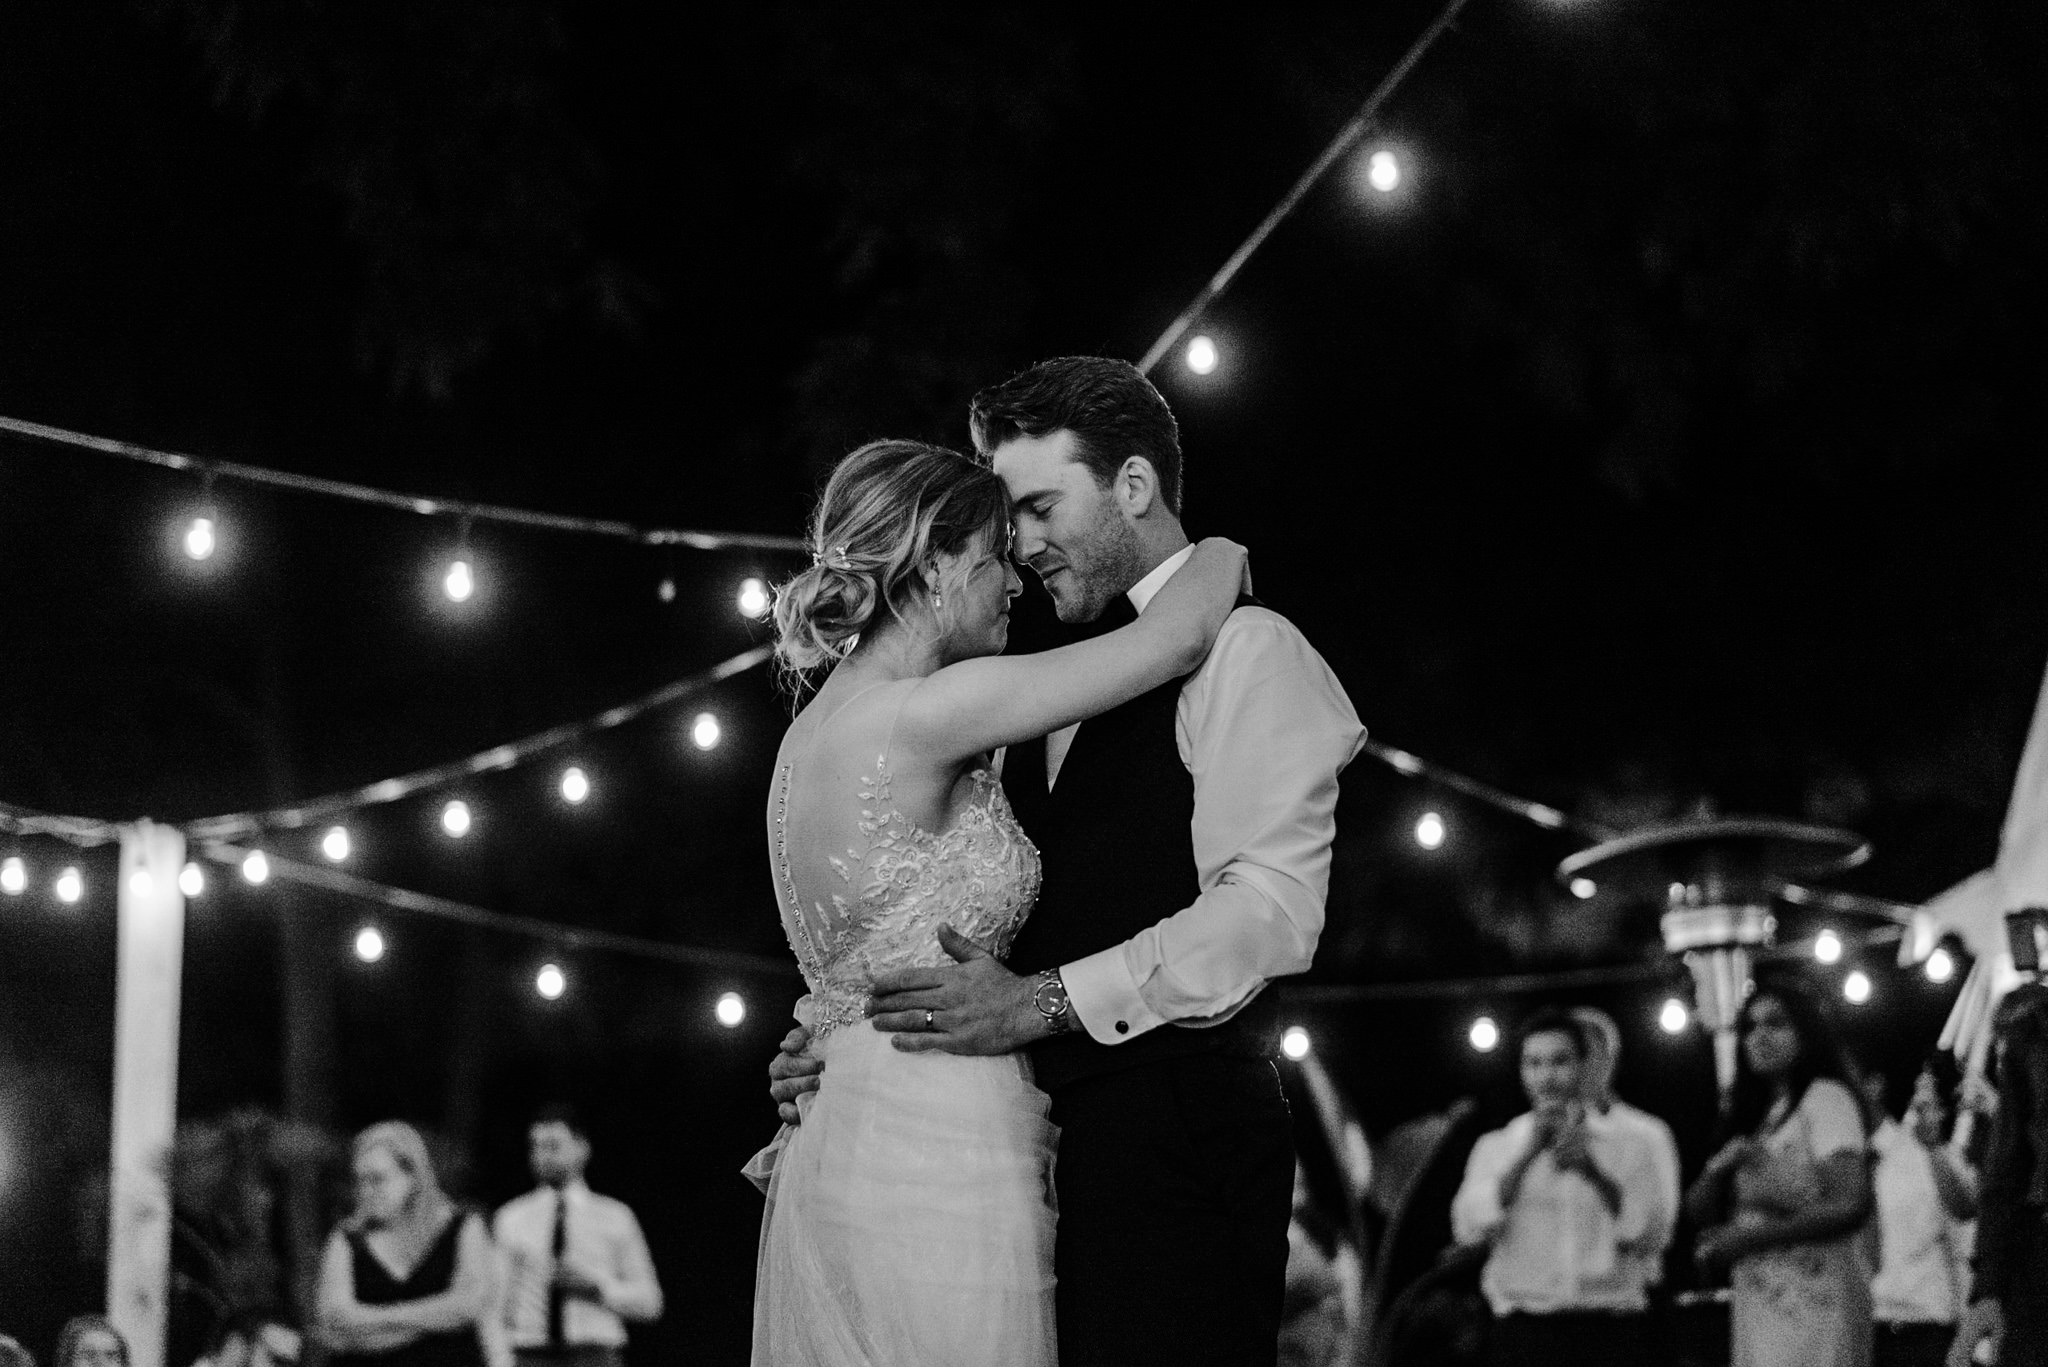 211-penryn-park-first-dance-string-lights-outdoor-wedding.jpg